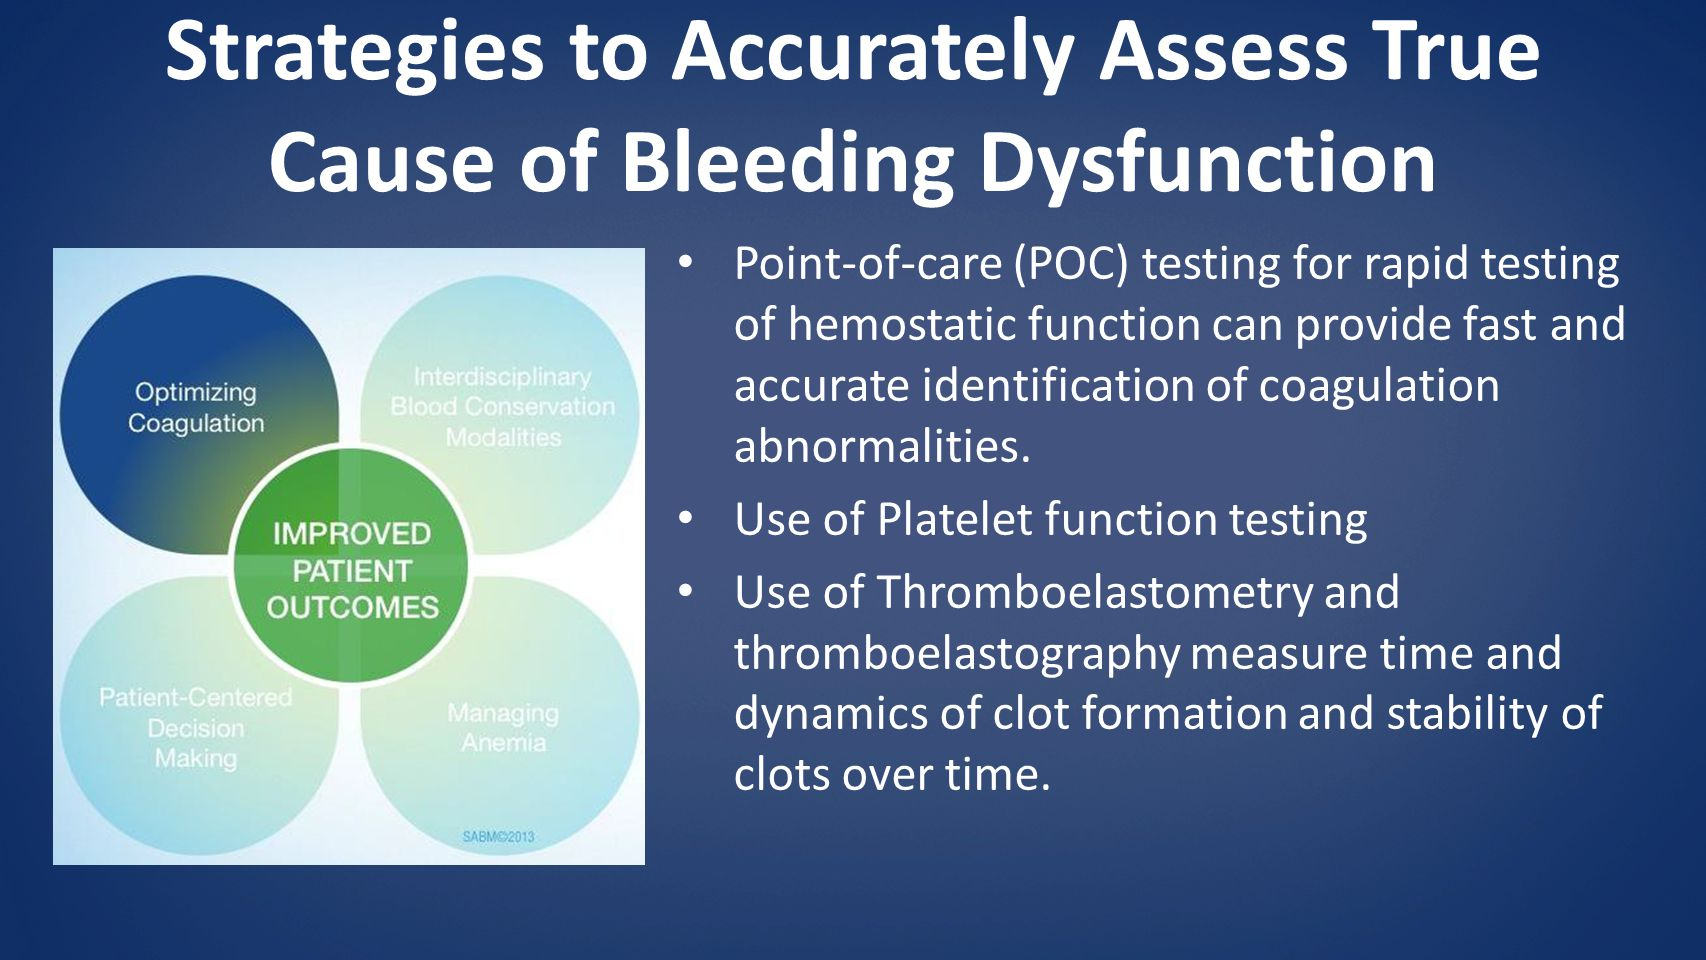 Strategies to Accurately Assess True Cause of Bleeding Dysfunction Point-of-care (POC) testing for rapid testing of hemostatic function can provide fast and accurate identification of coagulation abnormalities.